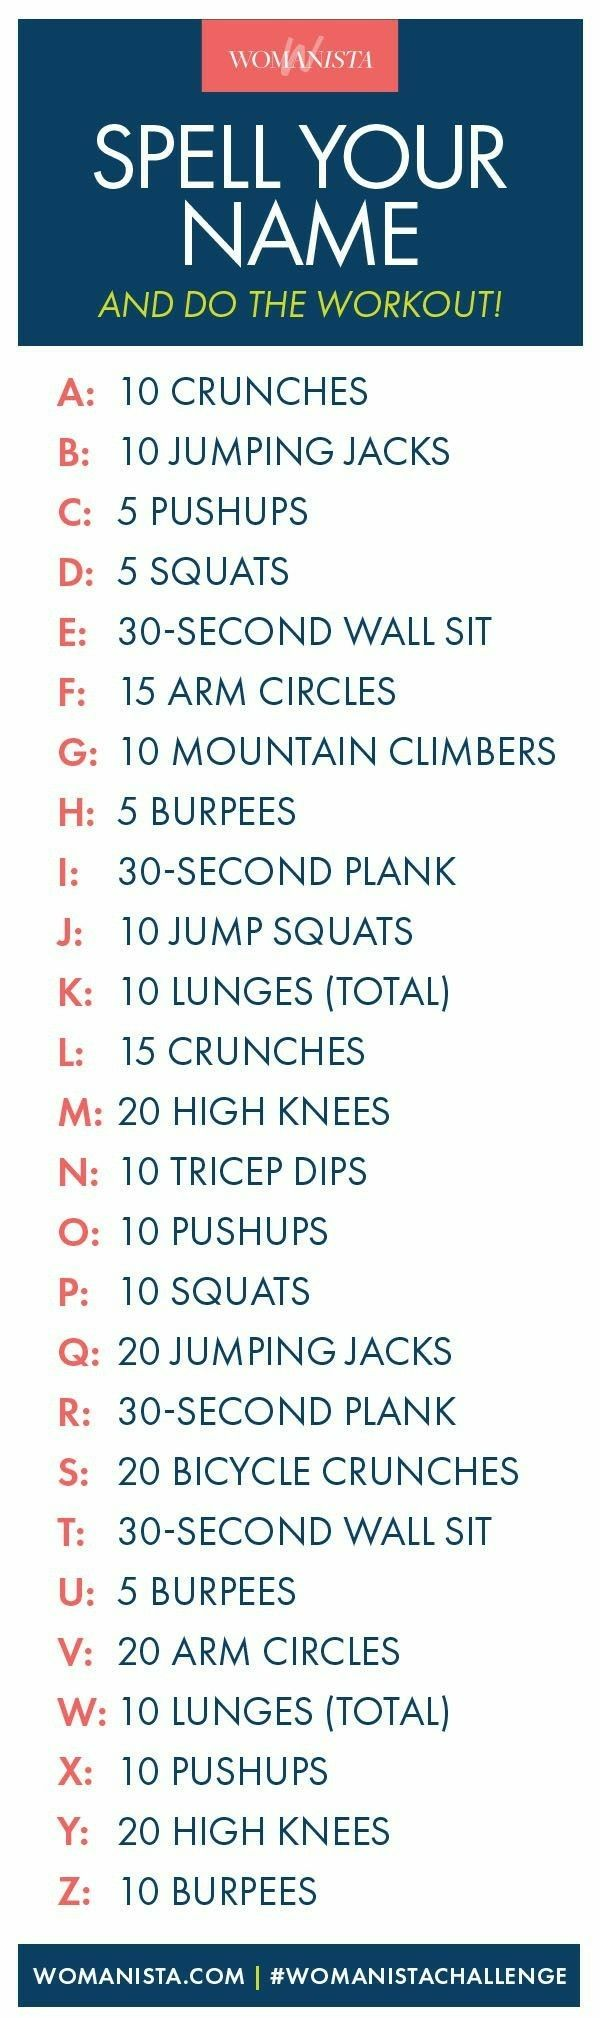 Spell Your First Middle And Last Name Health Fitness At Home Workouts Fitness Body